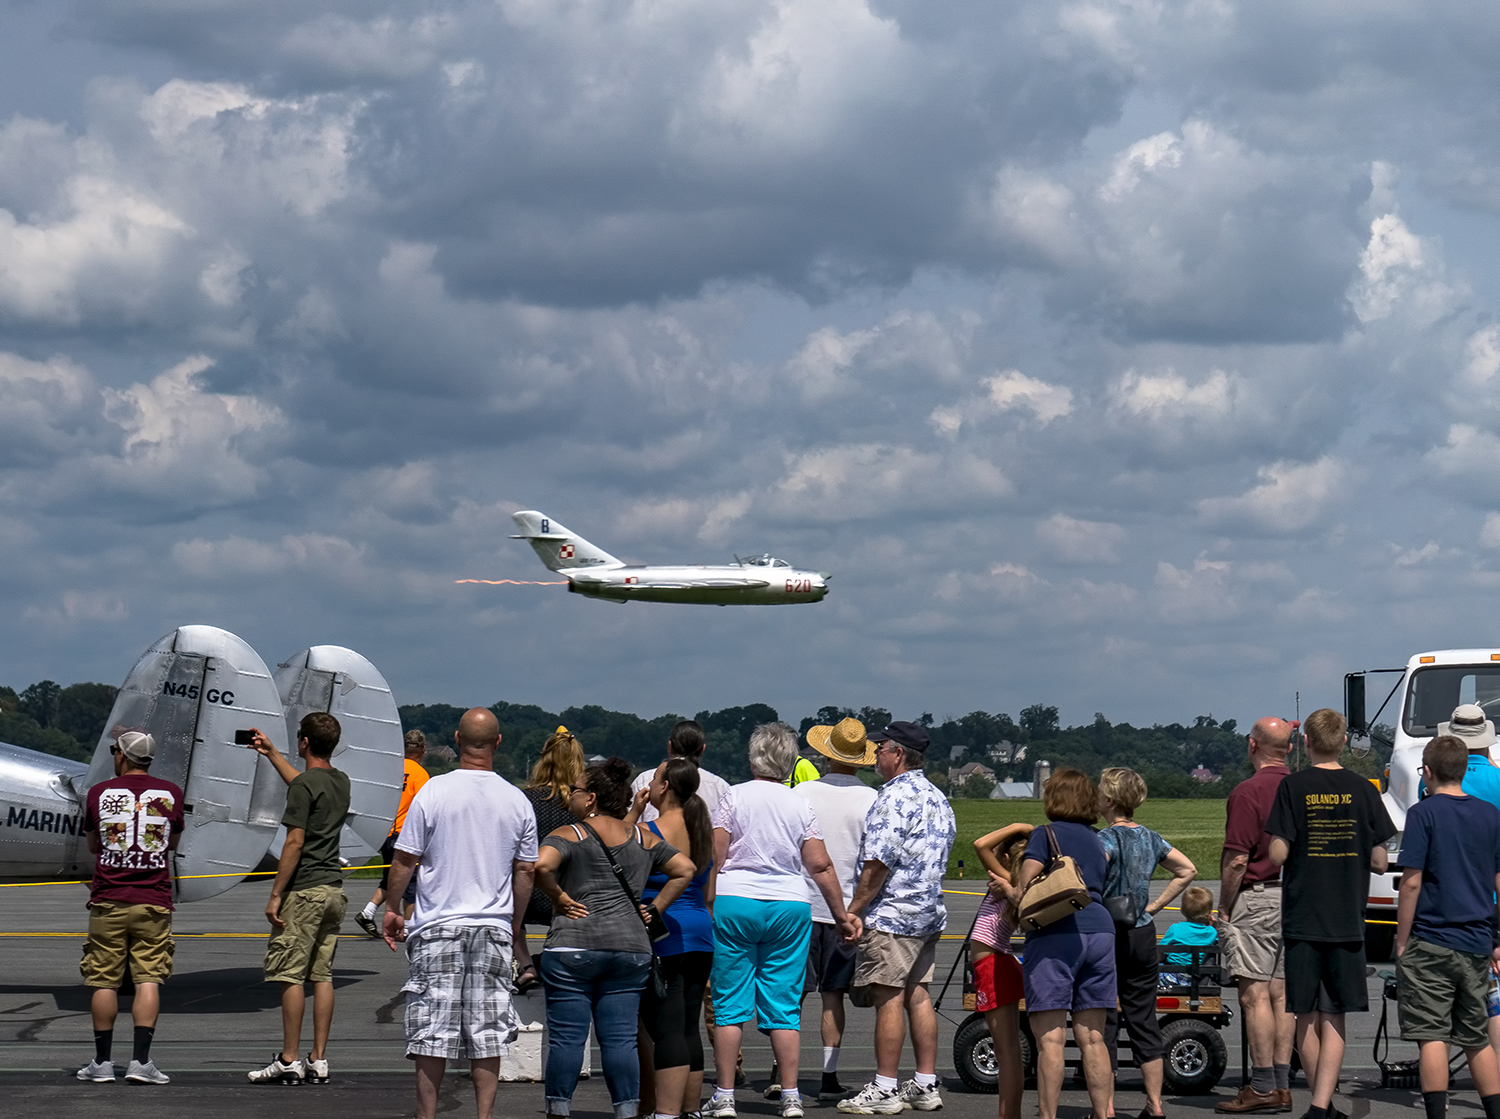 A Celebration of Flight - Get ready for high flying adventure at the Lancaster Airport Community Days August 24 & 25 in Lititz. Admission is FREE. Parking is $10 per vehicle.